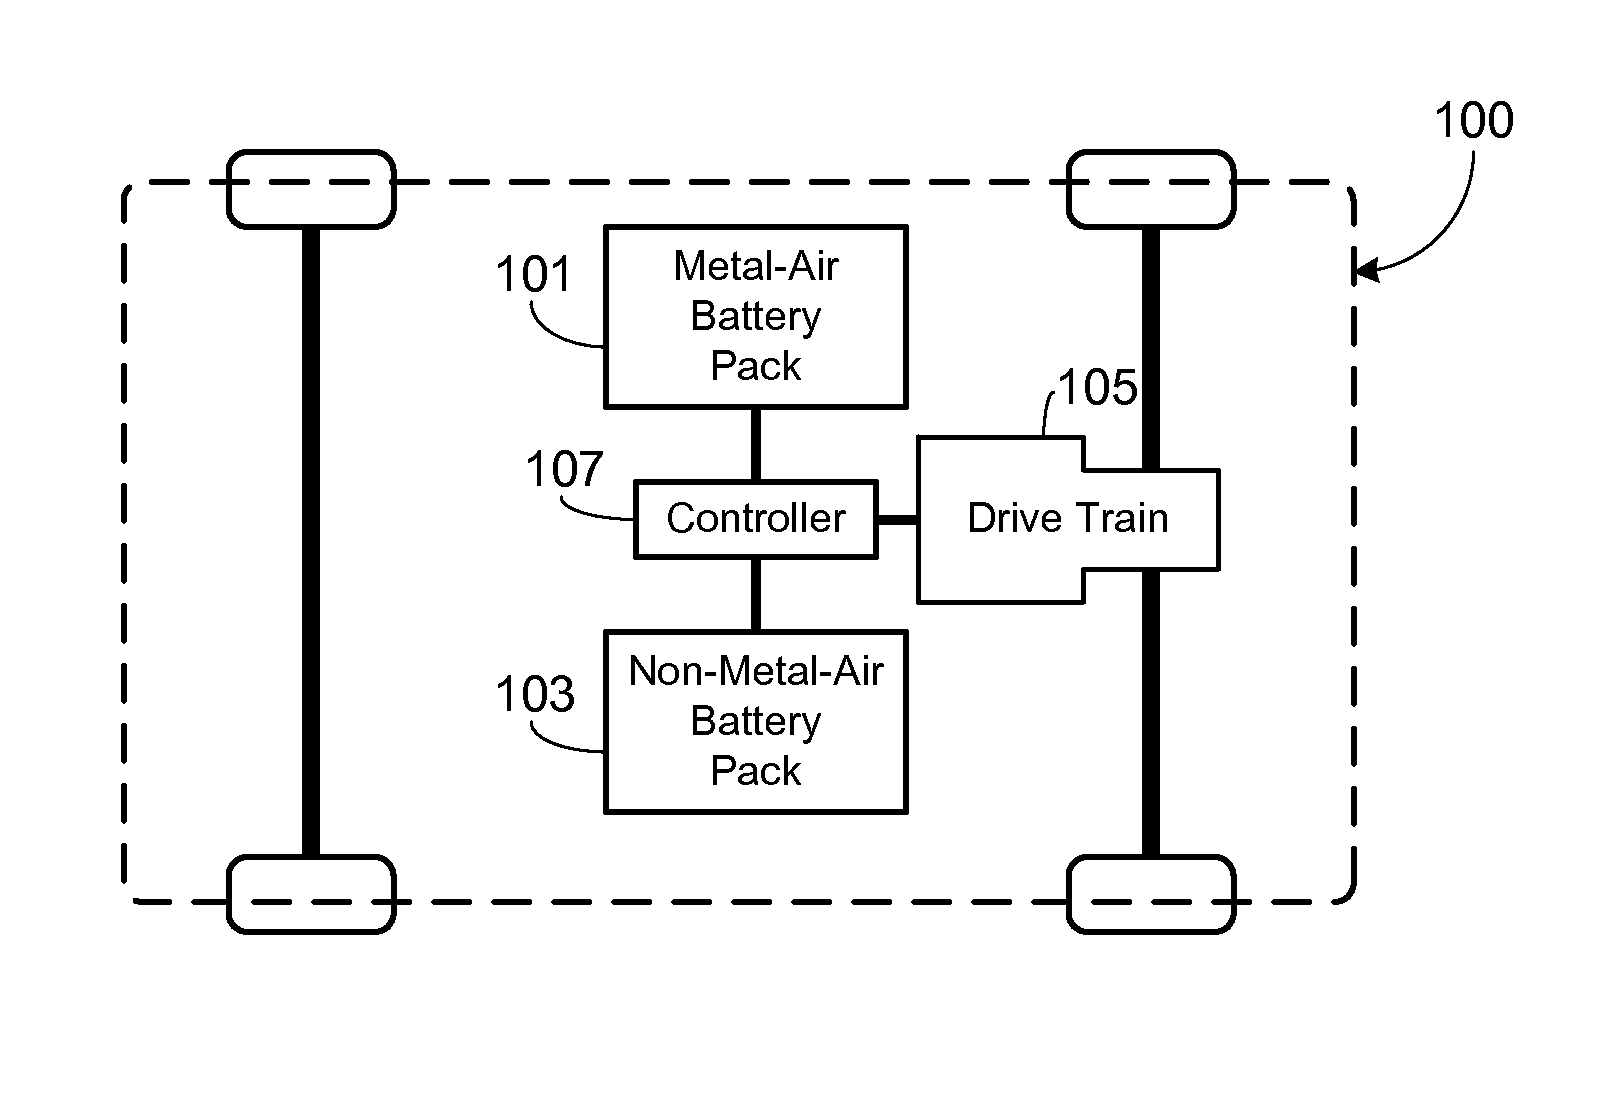 Analytics For Us Patent No 8449997 Thermal Energy Transfer System Controlled Battery Charger From The Metal Air Pack To Non Is And Used Heat Prior Charging